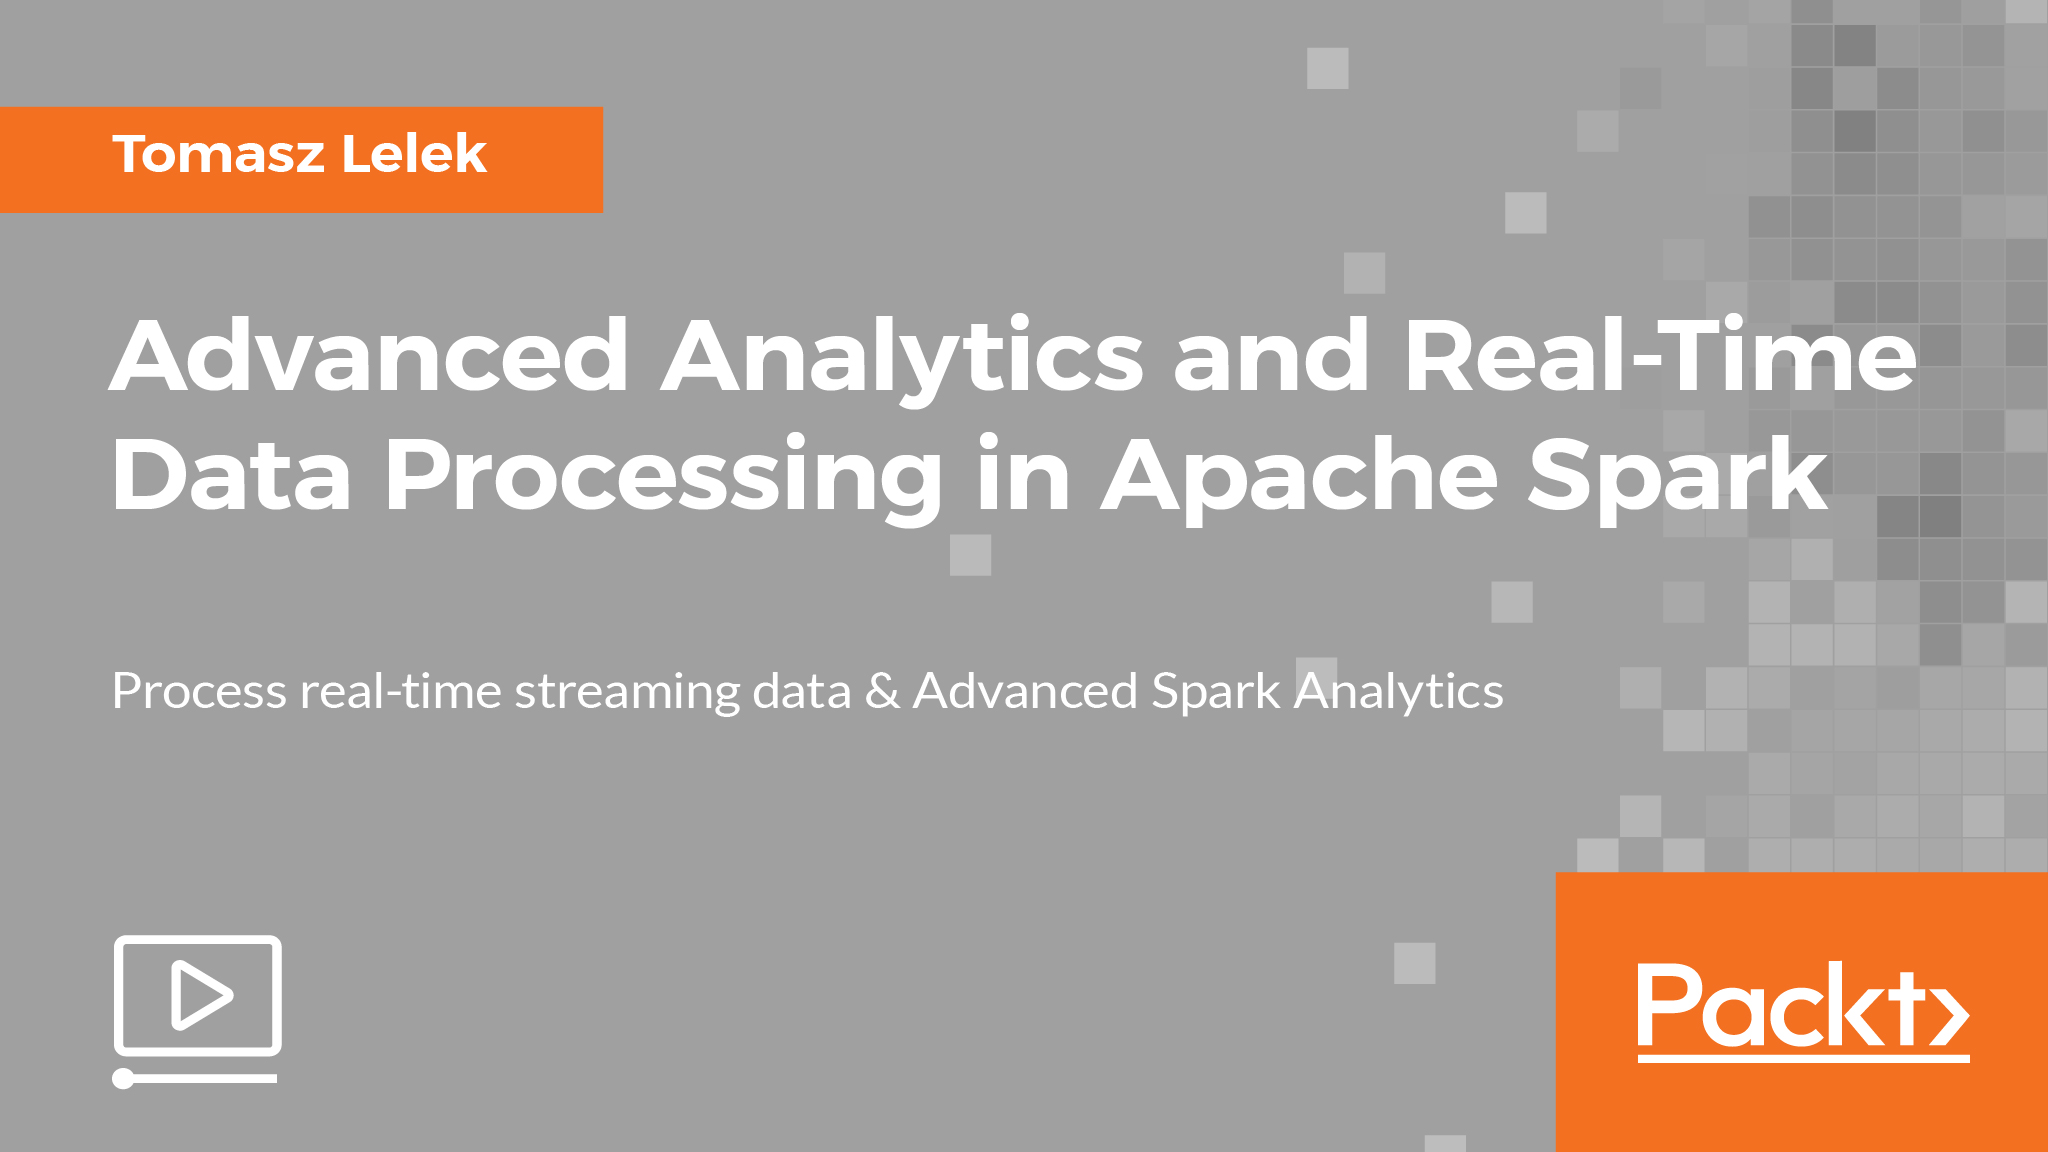 Advanced Analytics and Real-Time Data Processing in Apache Spark